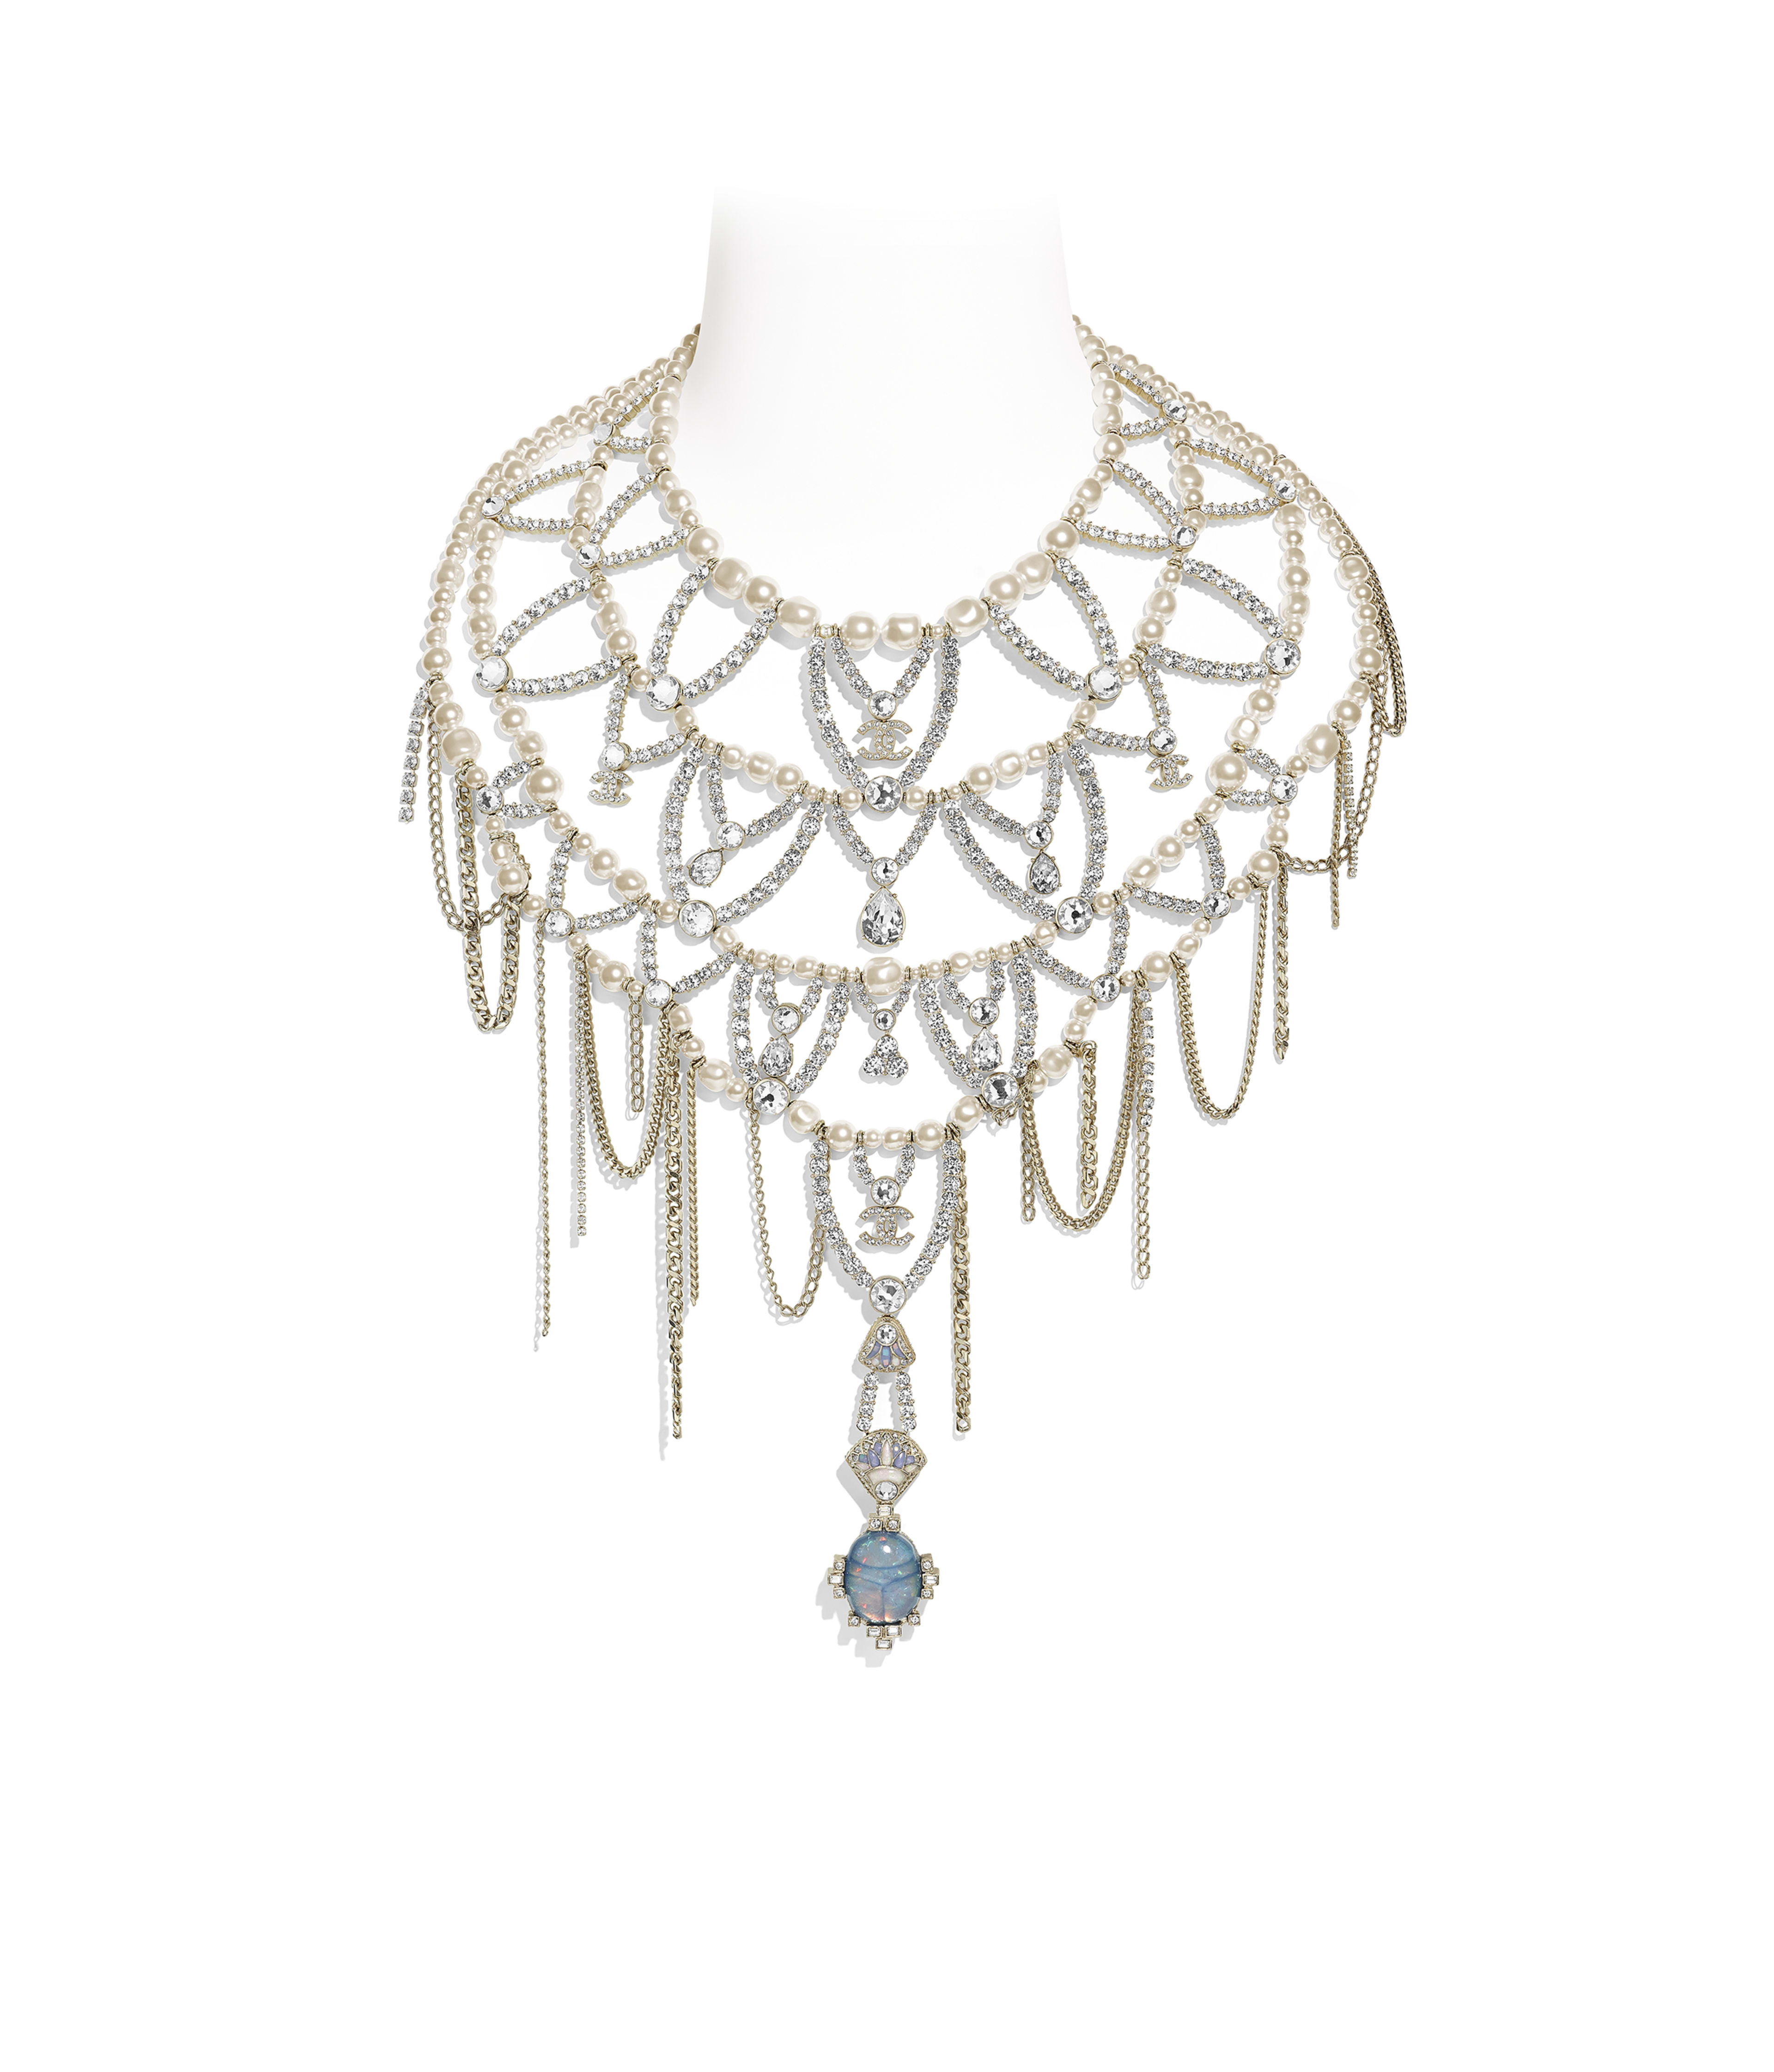 edf1f423 Necklace Metal, Glass Pearls, Strass & Resin, Gold, Pearly White & Crystal  Ref. AB2061Y47768Z9204